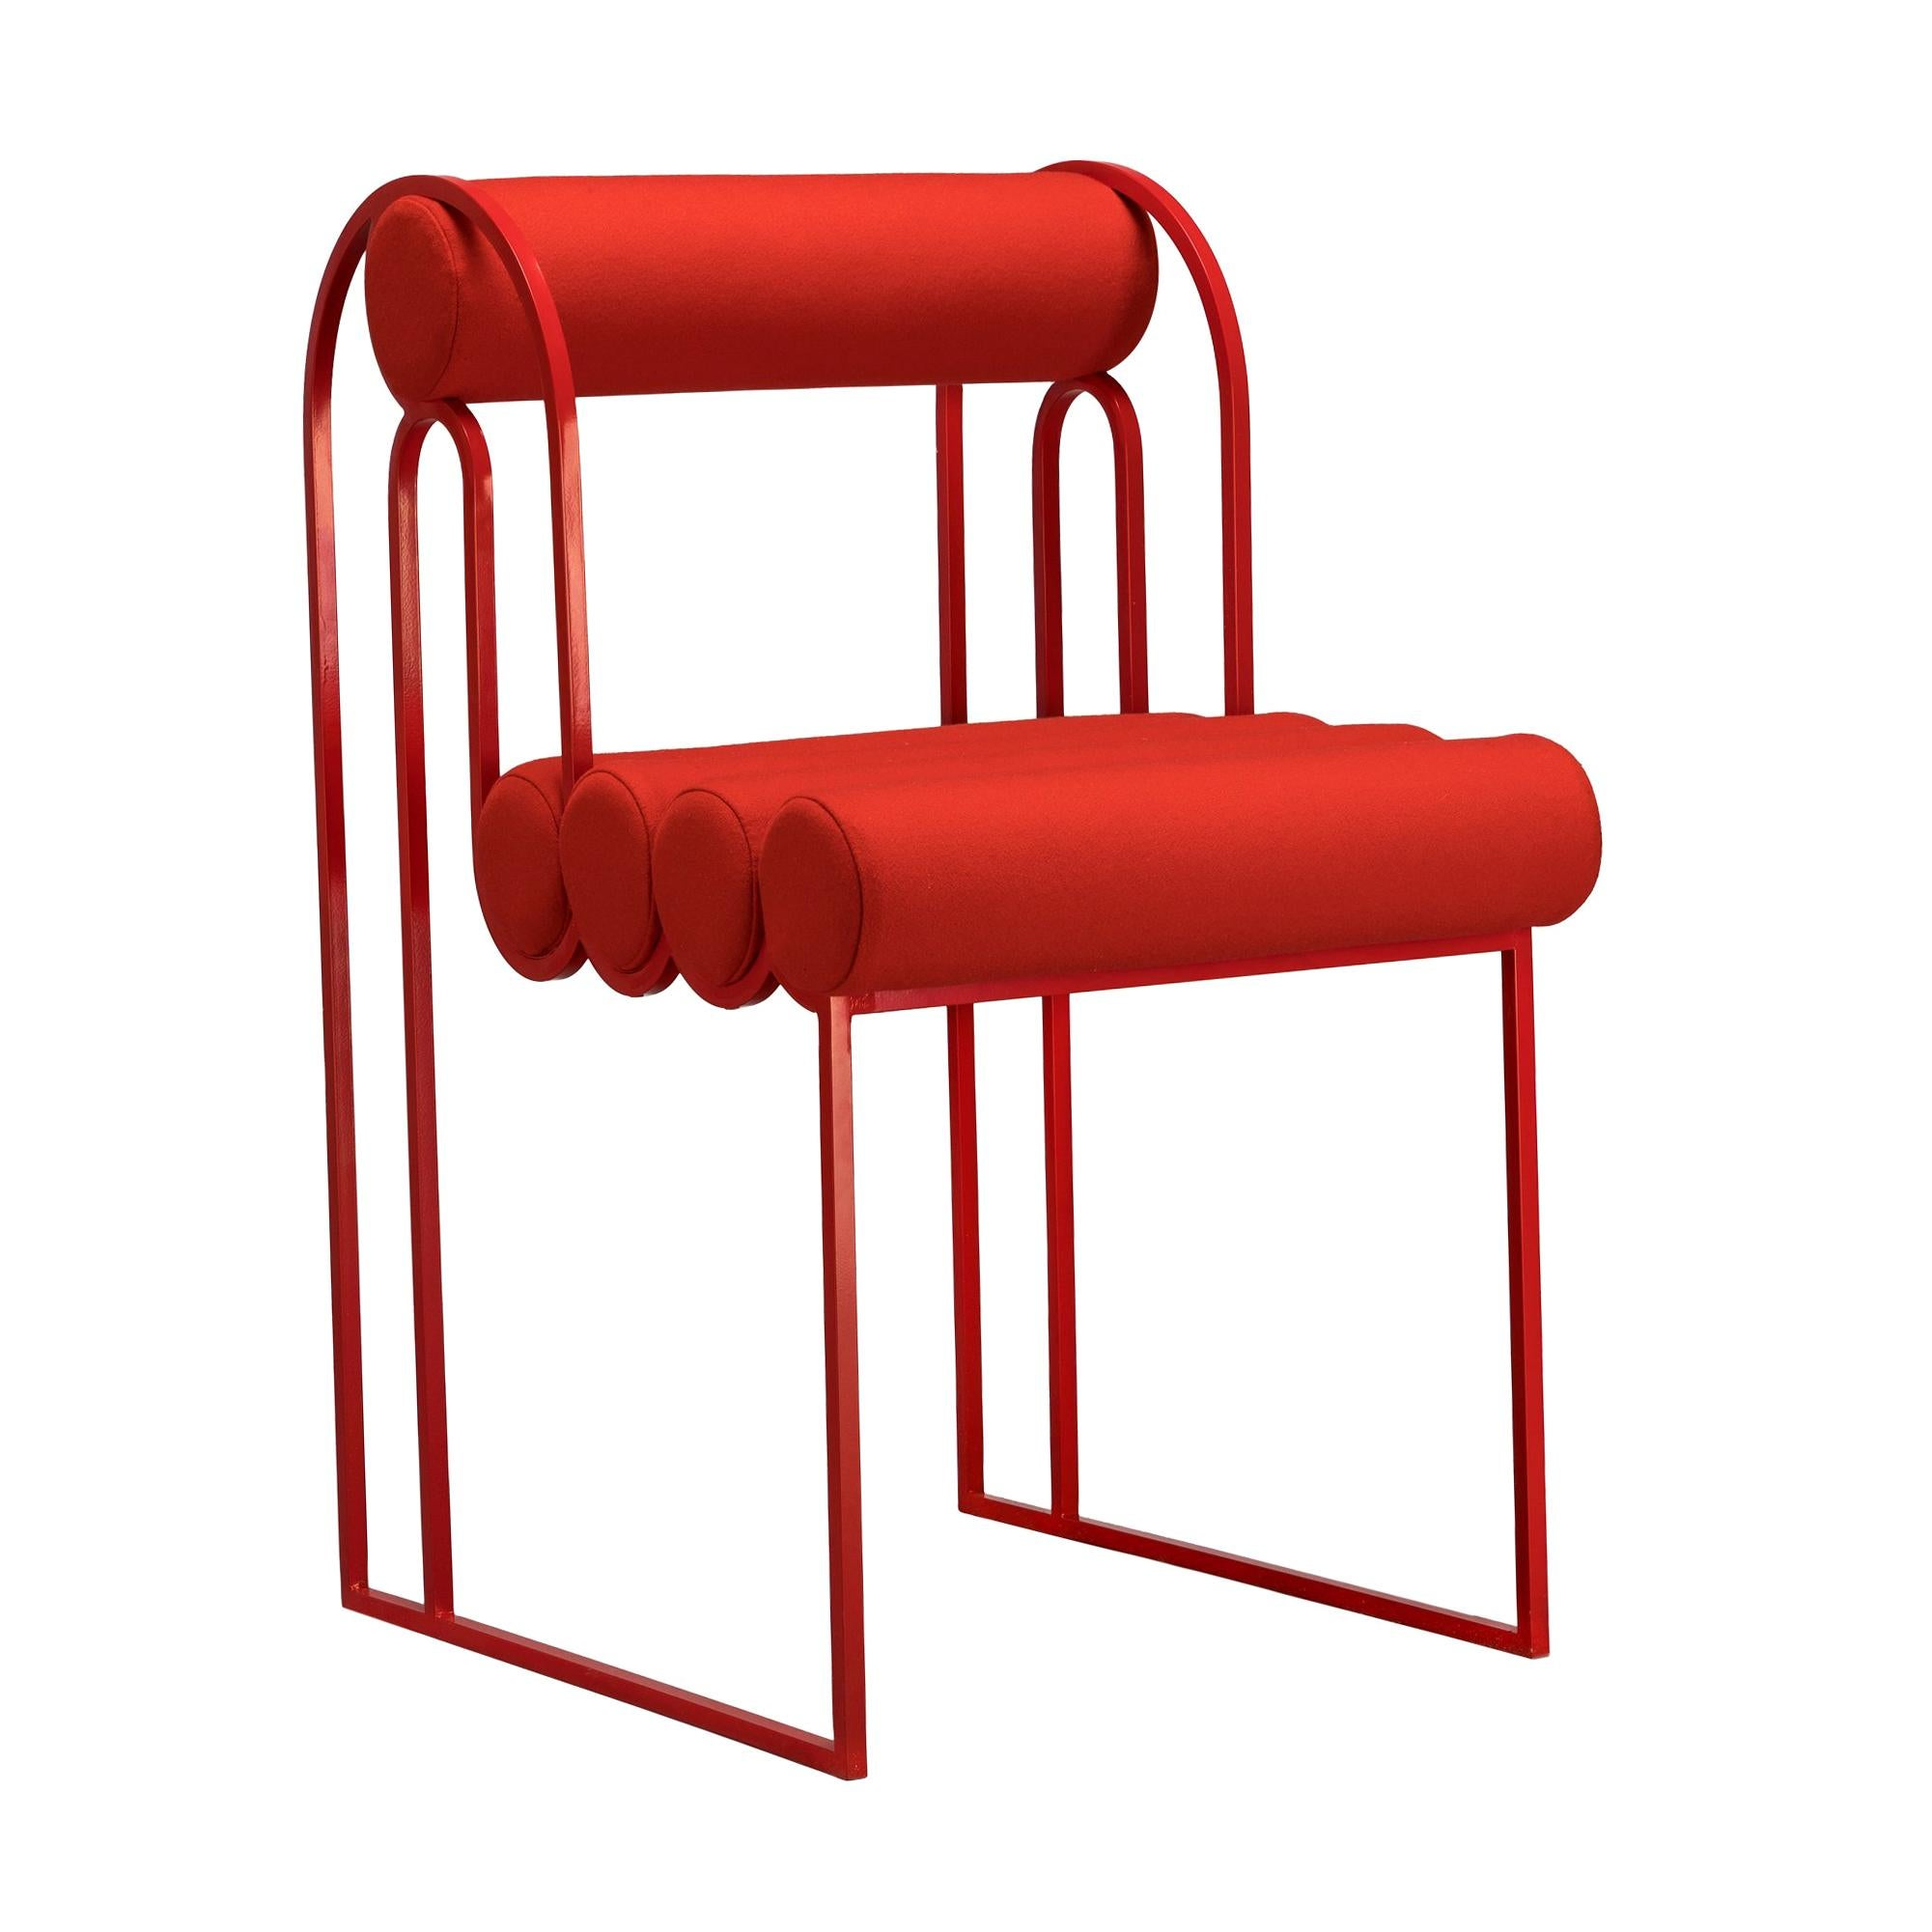 Apollo Dinning Chair, Red Coated Steel Frame and Red Wool by Lara Bohinc